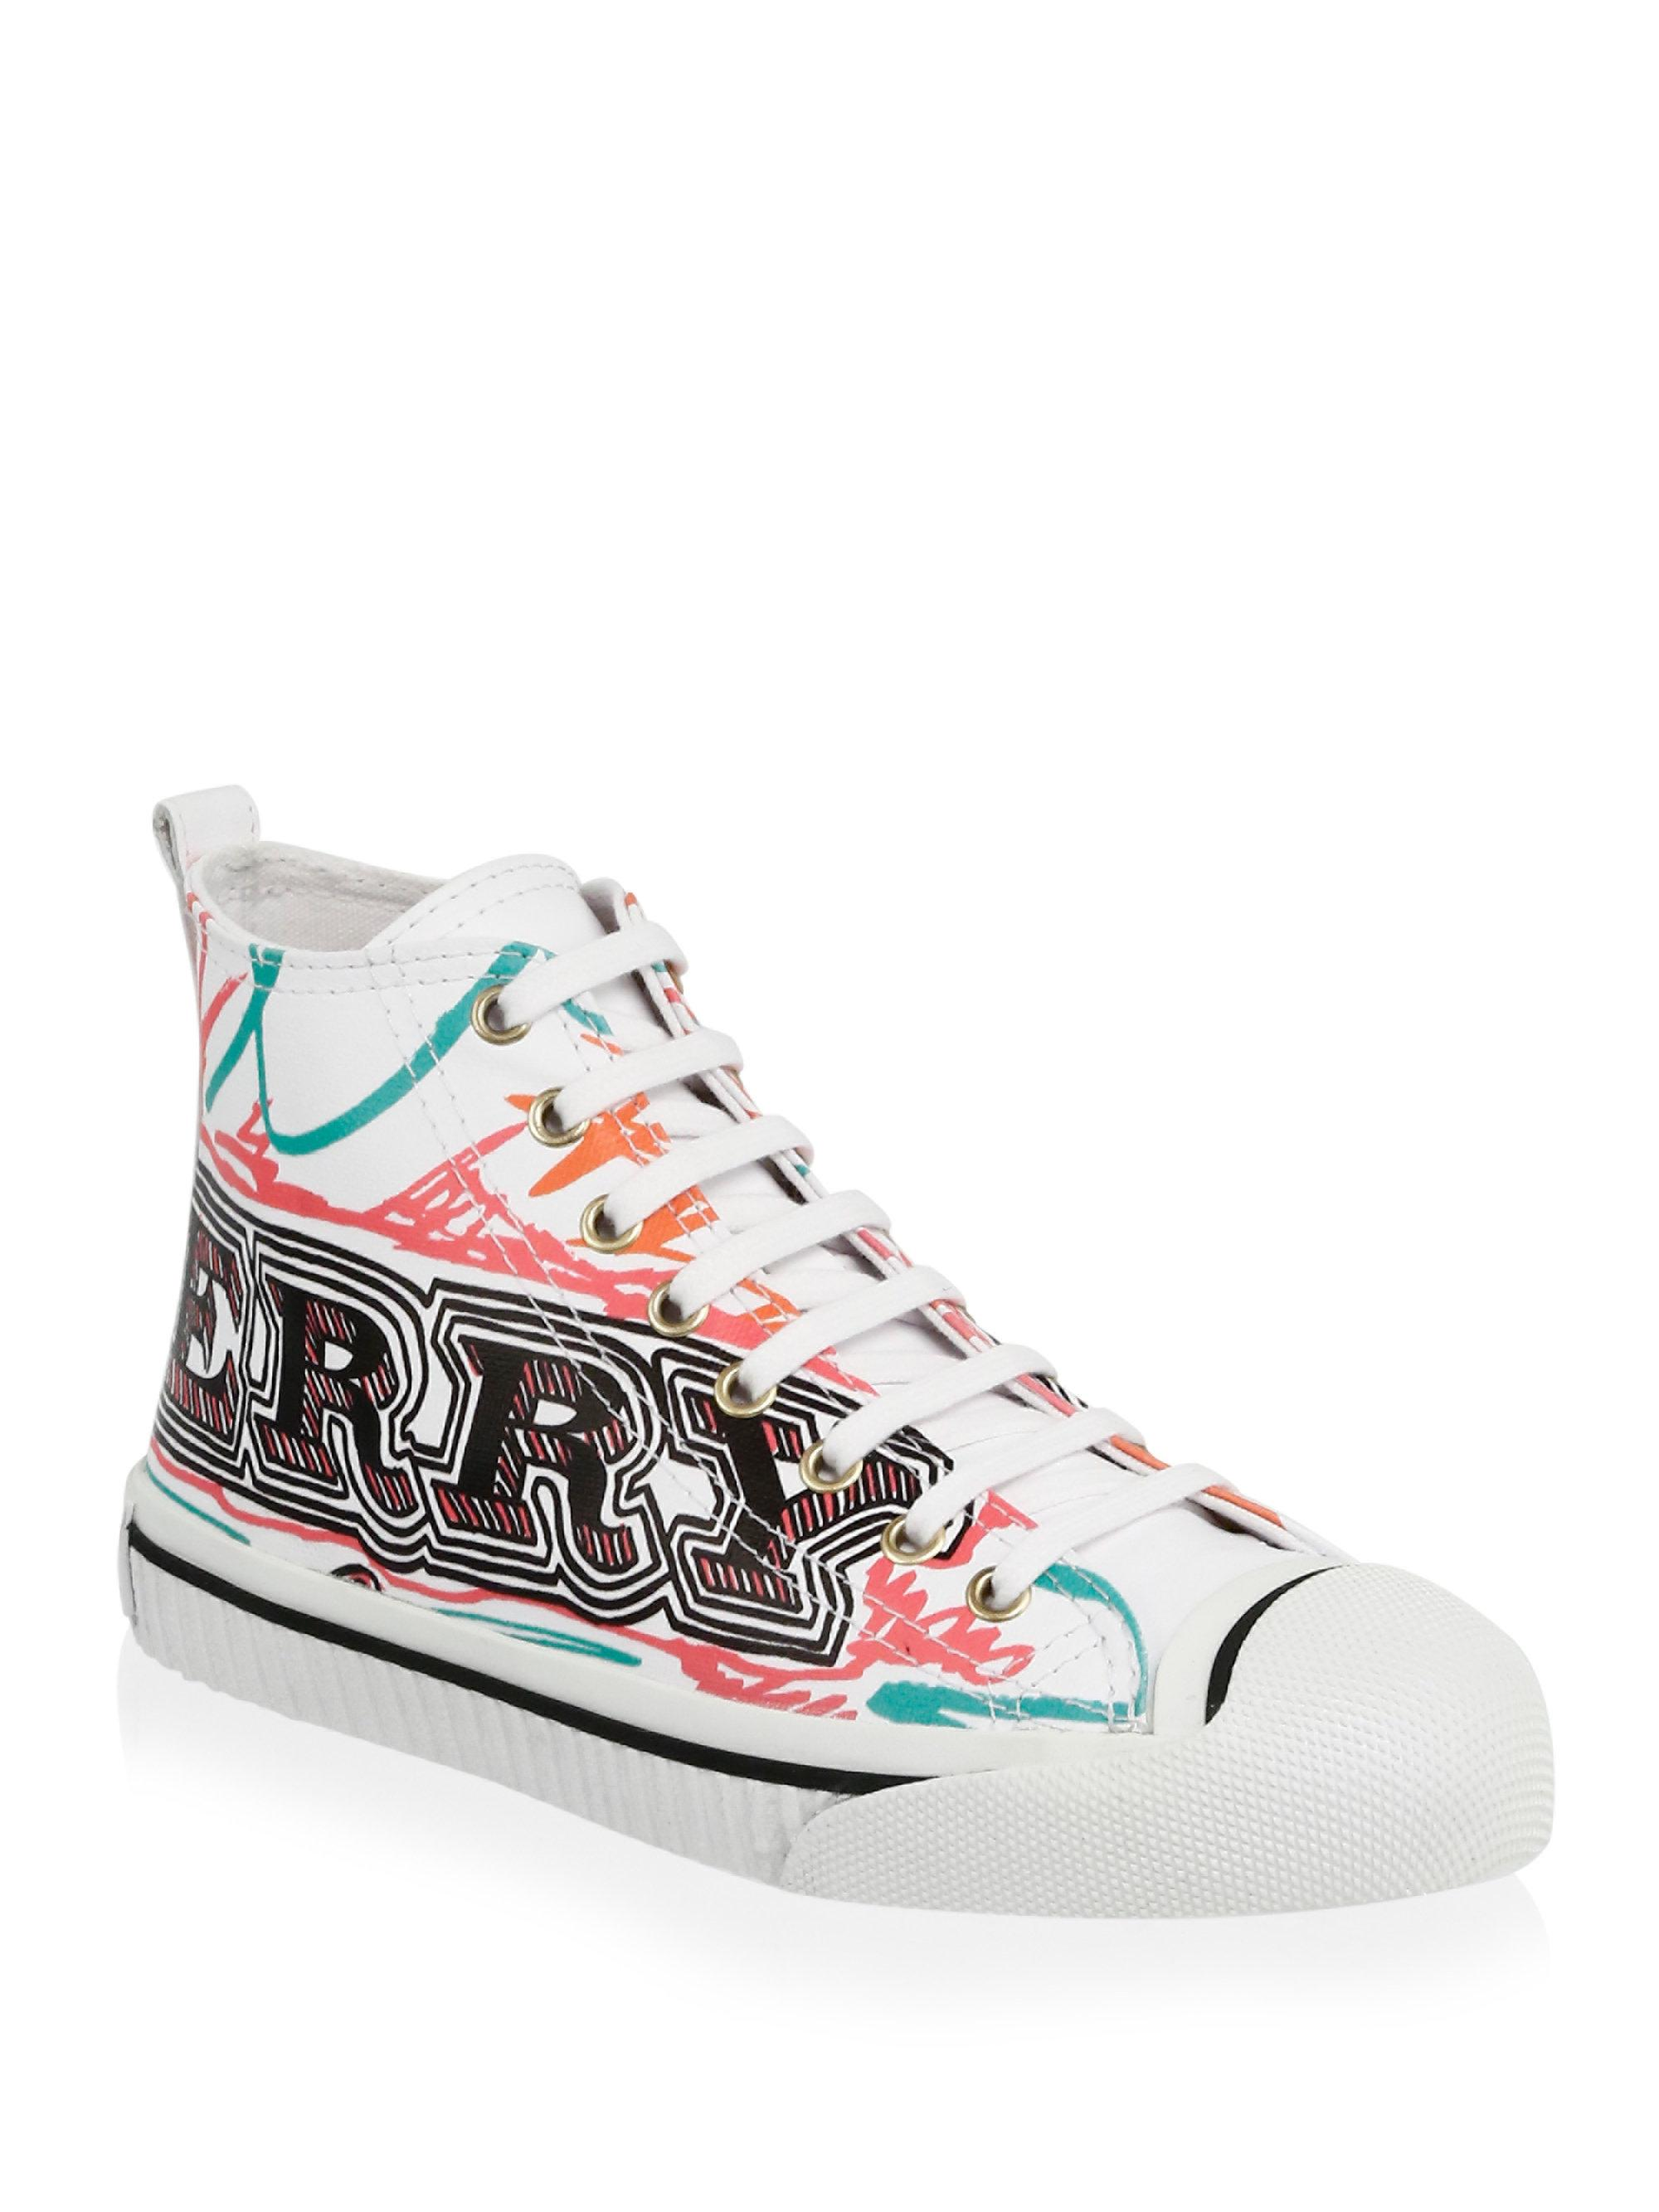 Burberry Leather Kingly Doodle Print